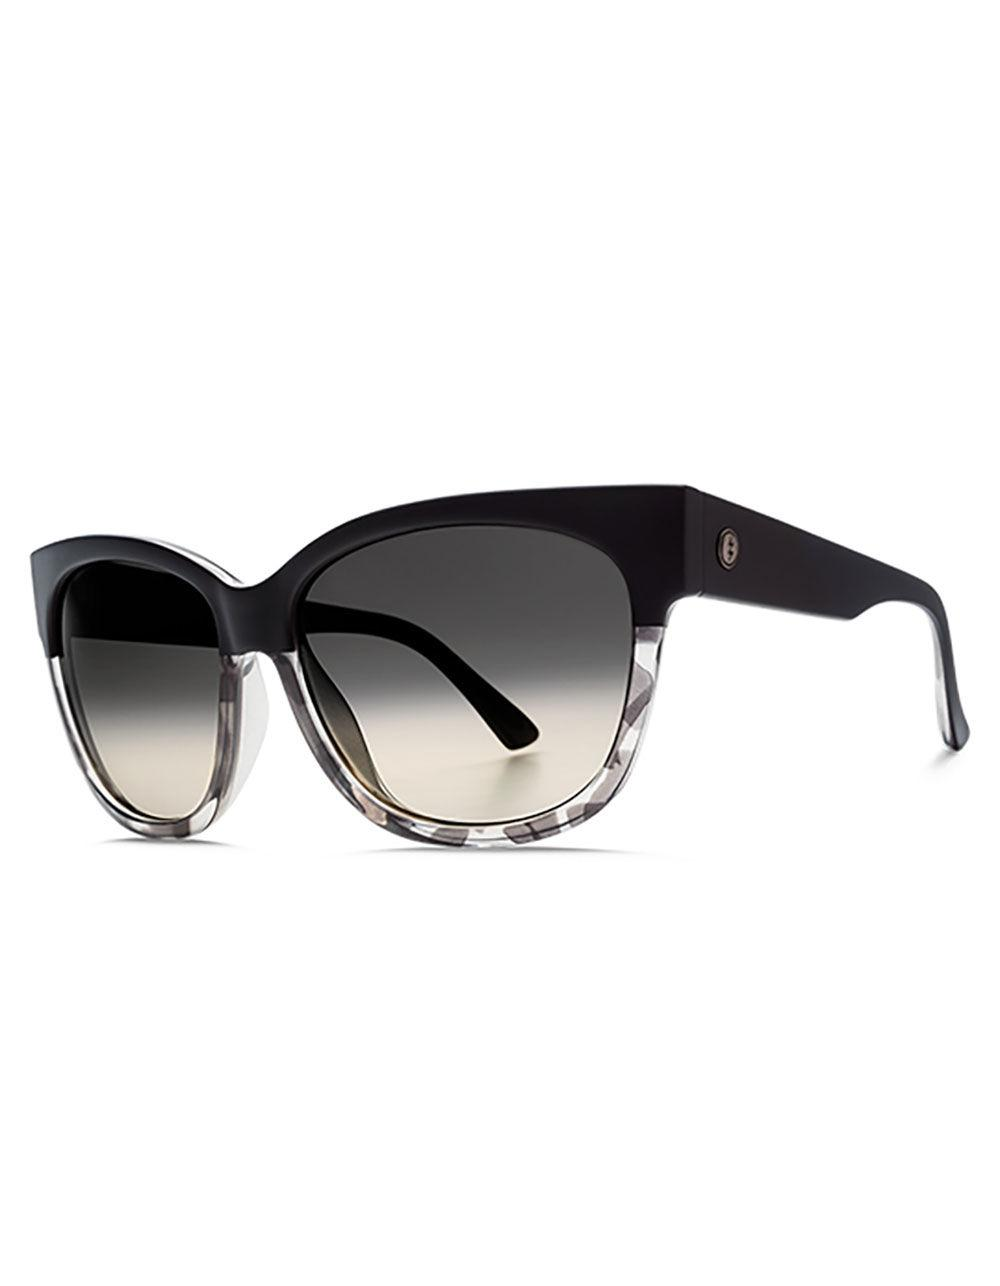 a51e7cb50d5ff Lyst - Electric Danger Cat Darkstone Sunglasses